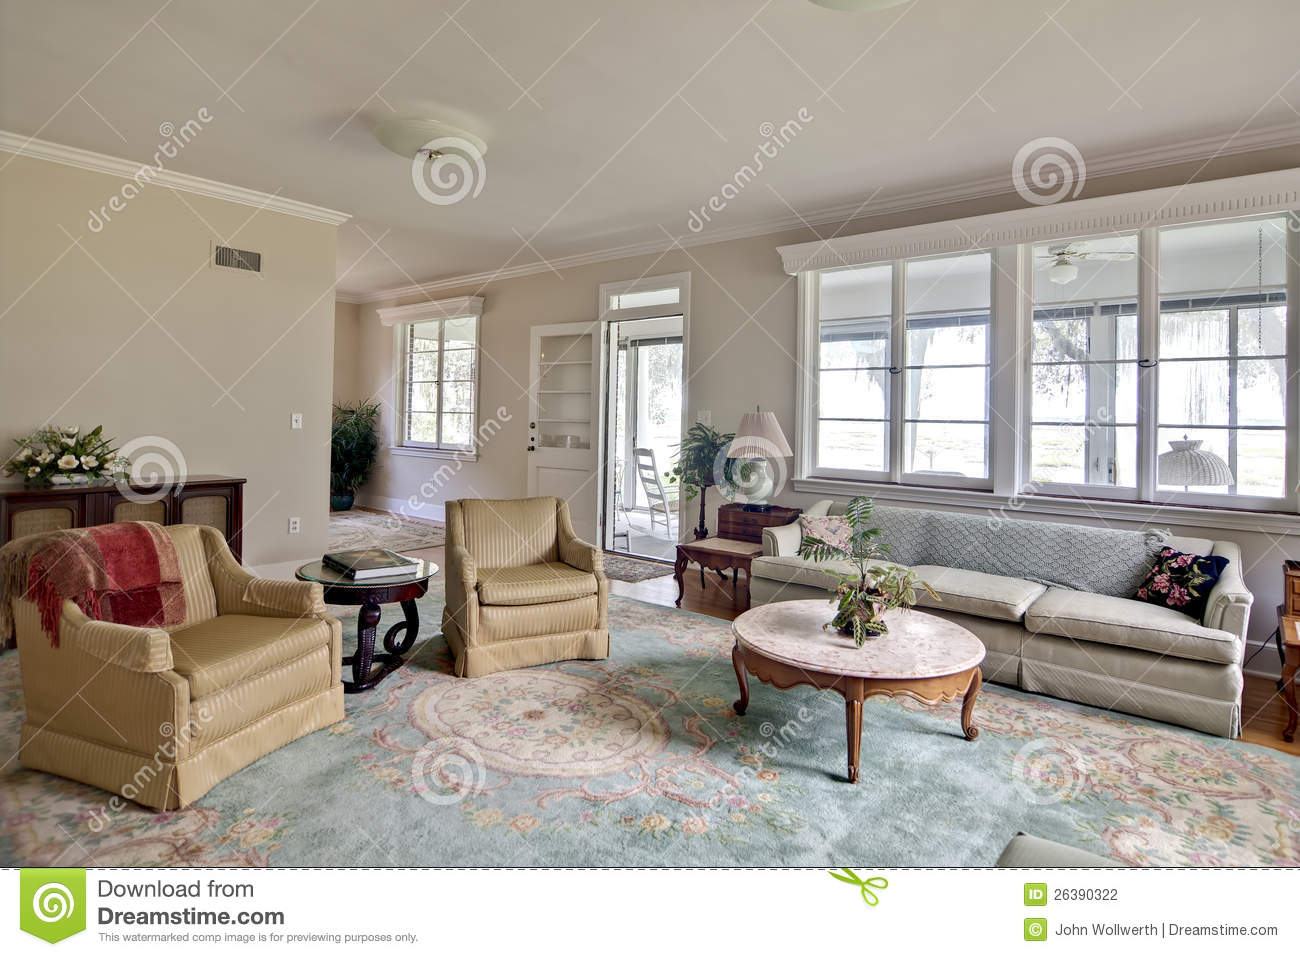 Old Dated Home Interior With Old Furniture The